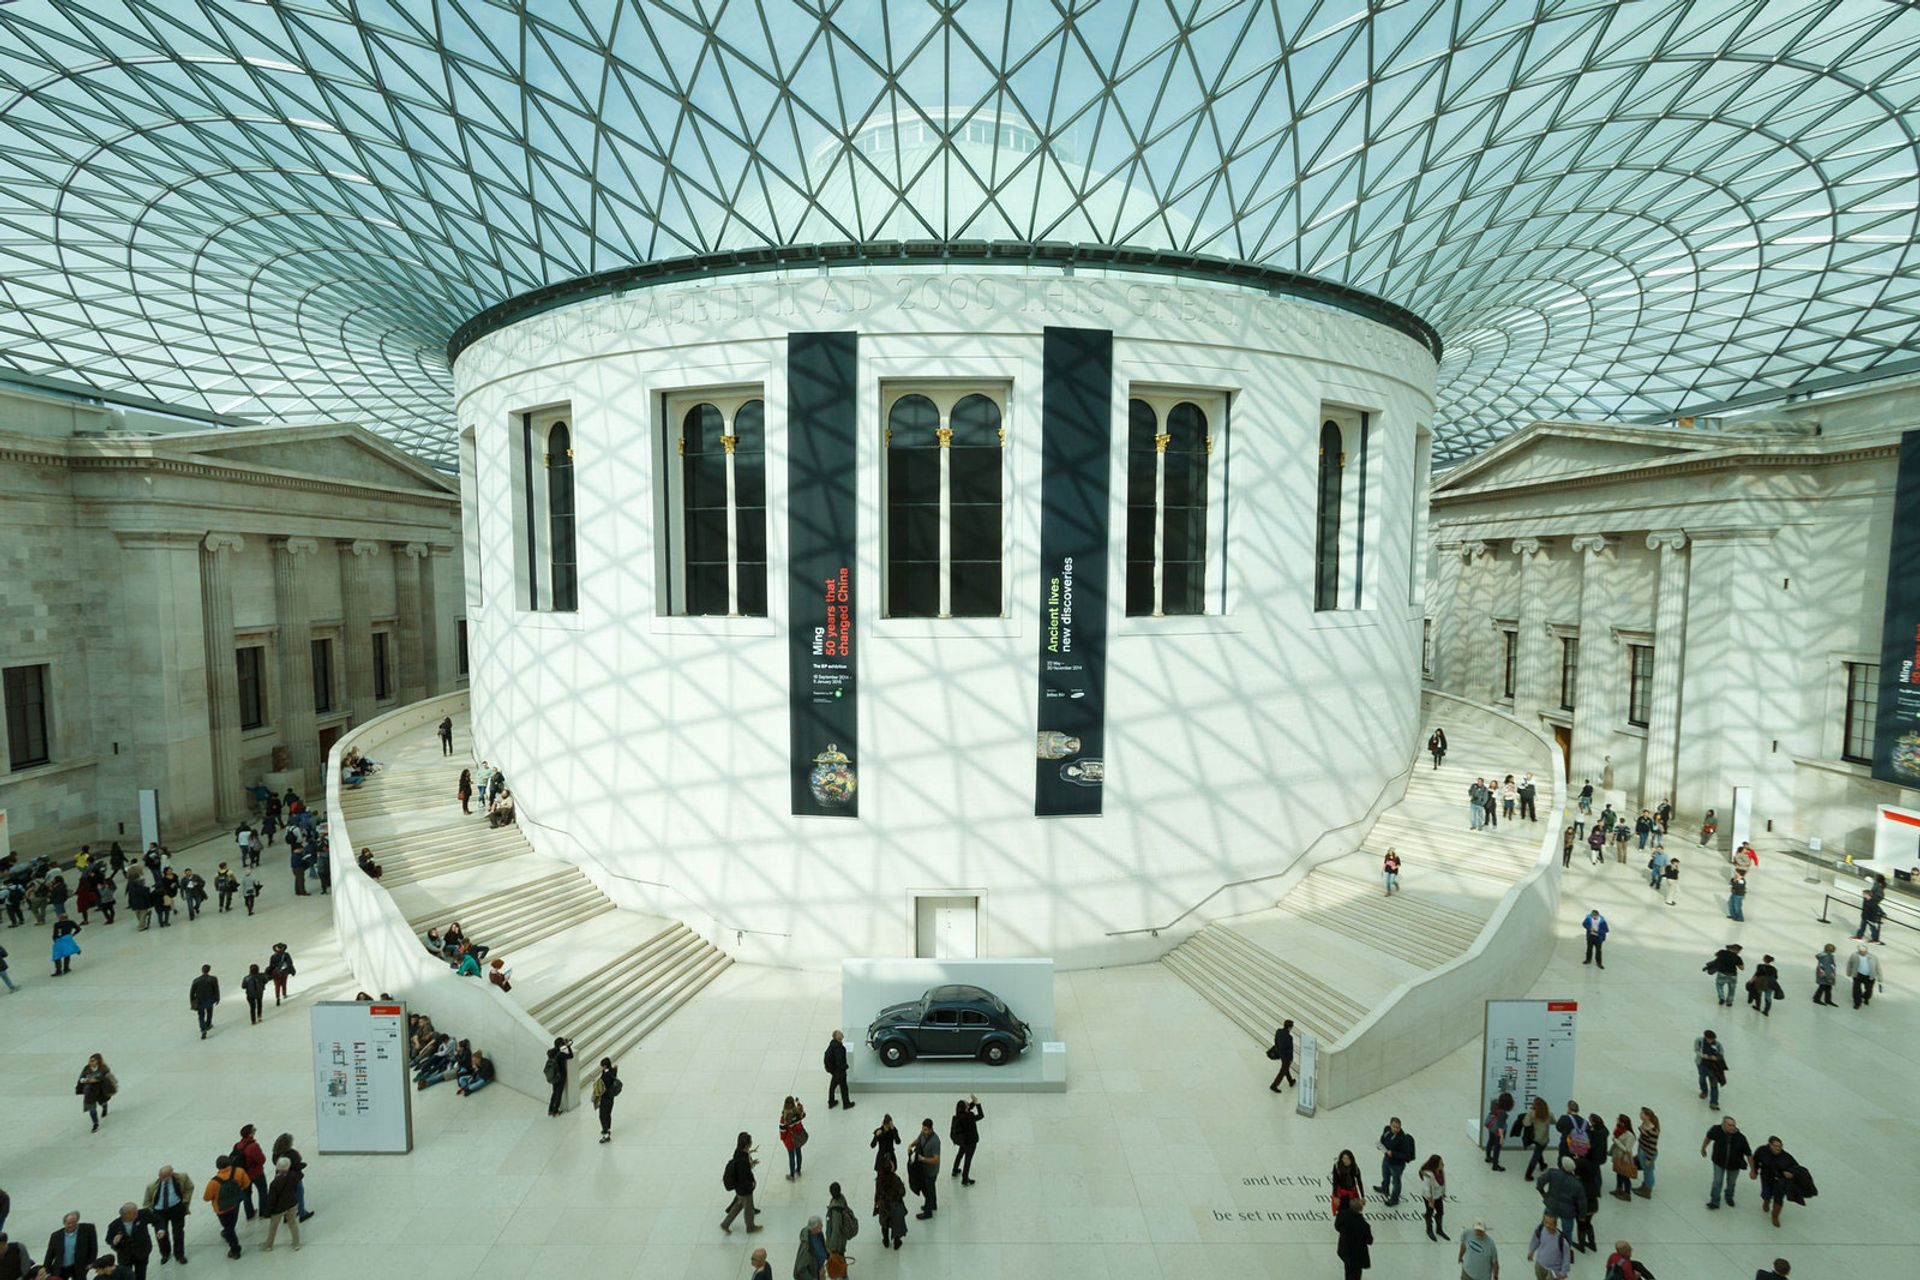 Fischer described BP's support as vital to the British Museum's mission p&p photo